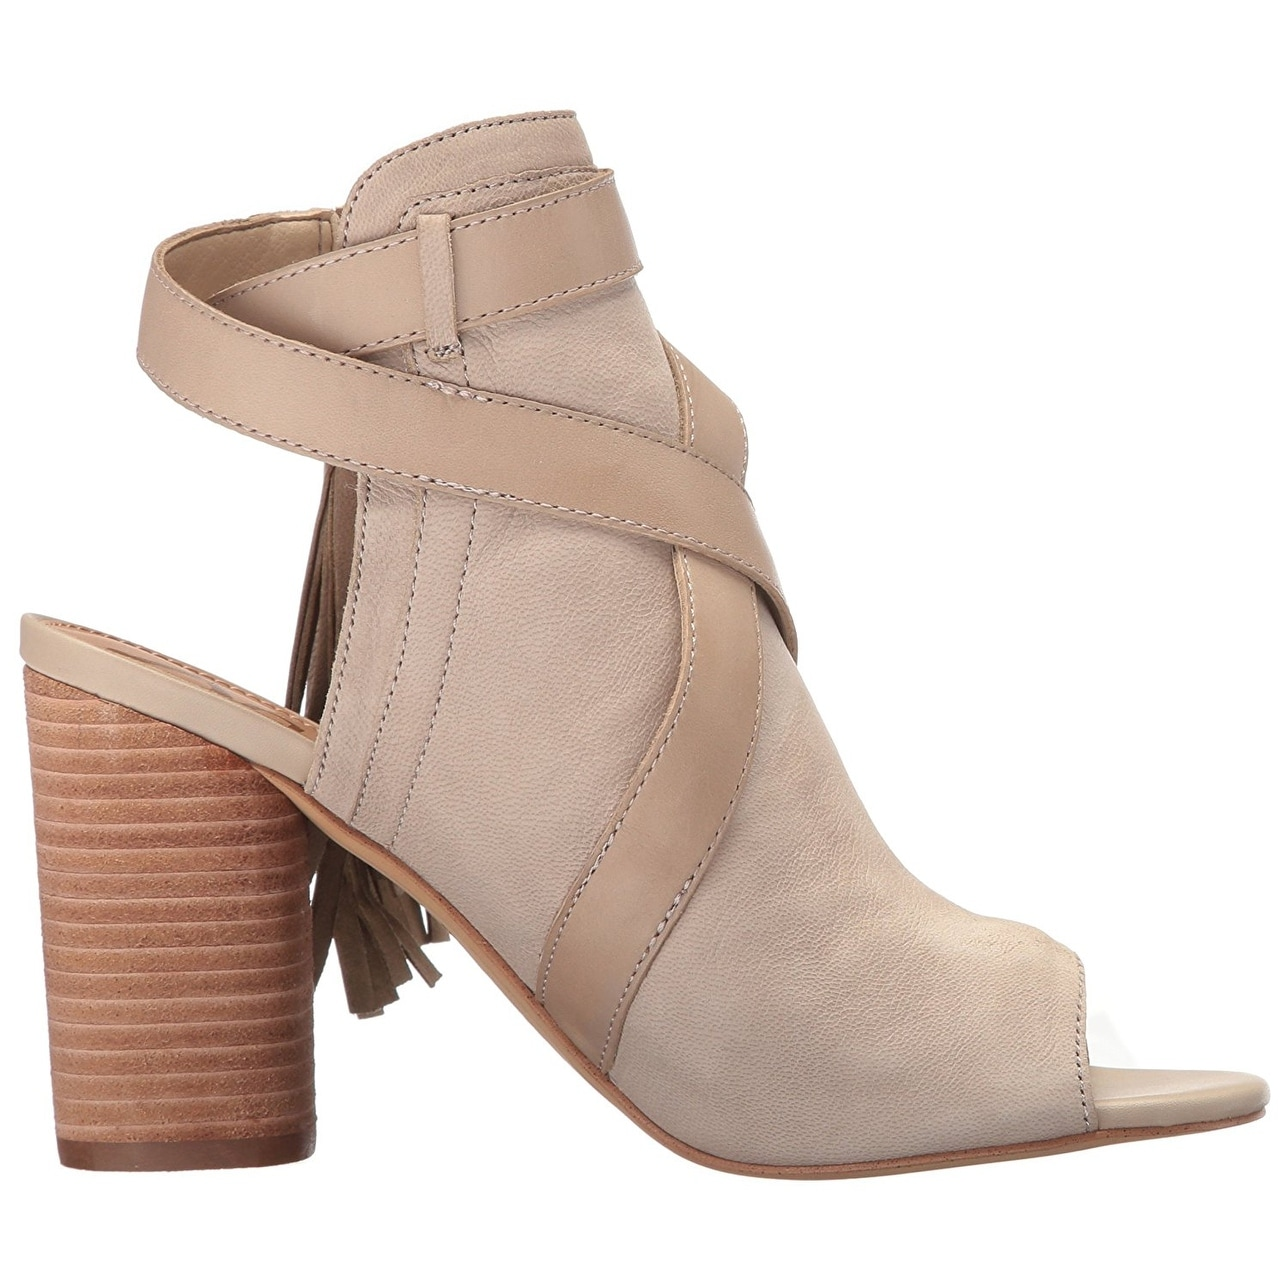 bbbf3411bf7c0b Shop Sam Edelman Women s Vermont - Free Shipping Today - Overstock -  20578179